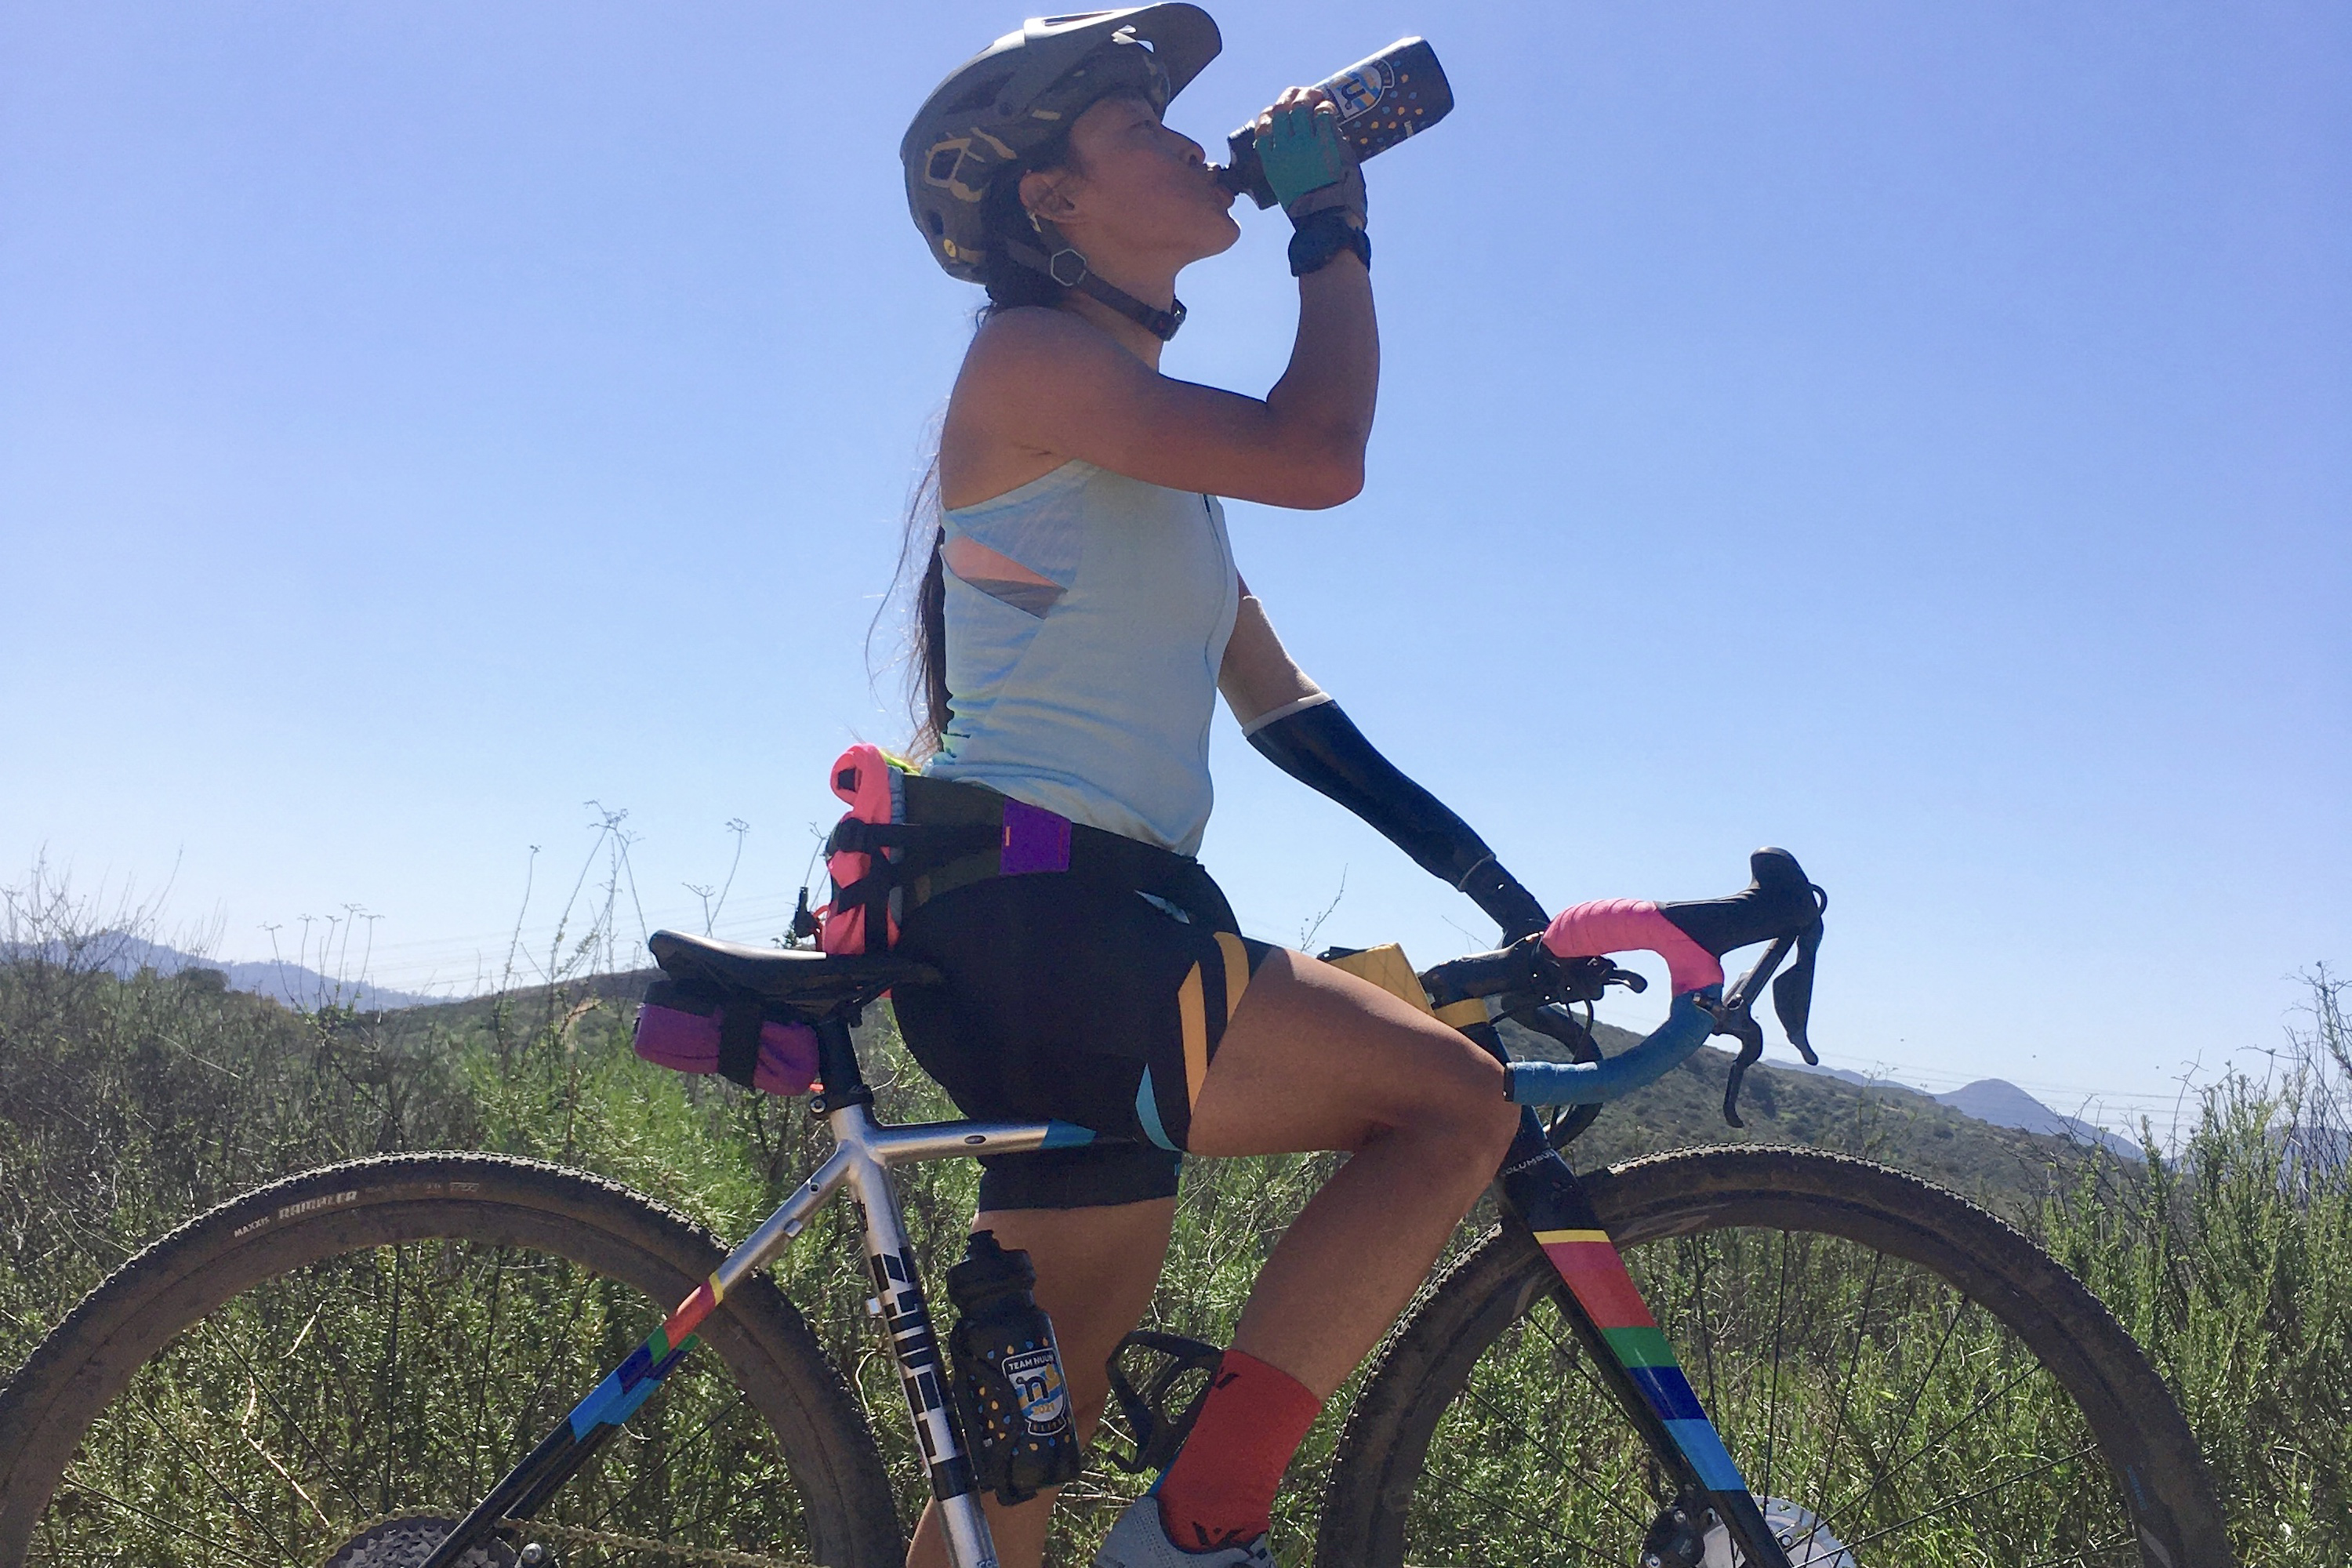 Josie Fouts adaptive MTB athlete